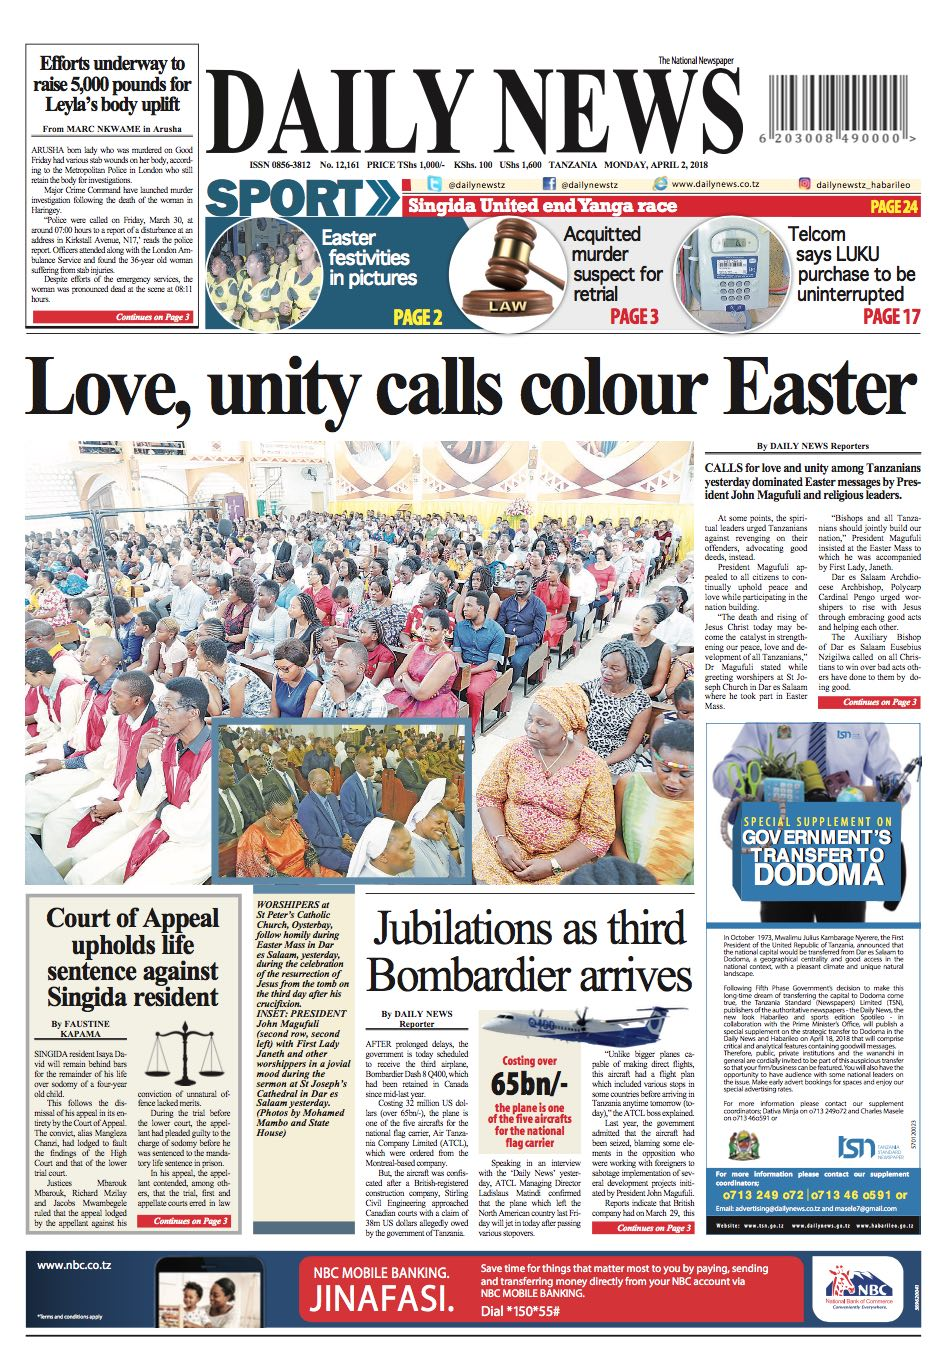 LOVE  UNITY CALLS COLOUR EASTER